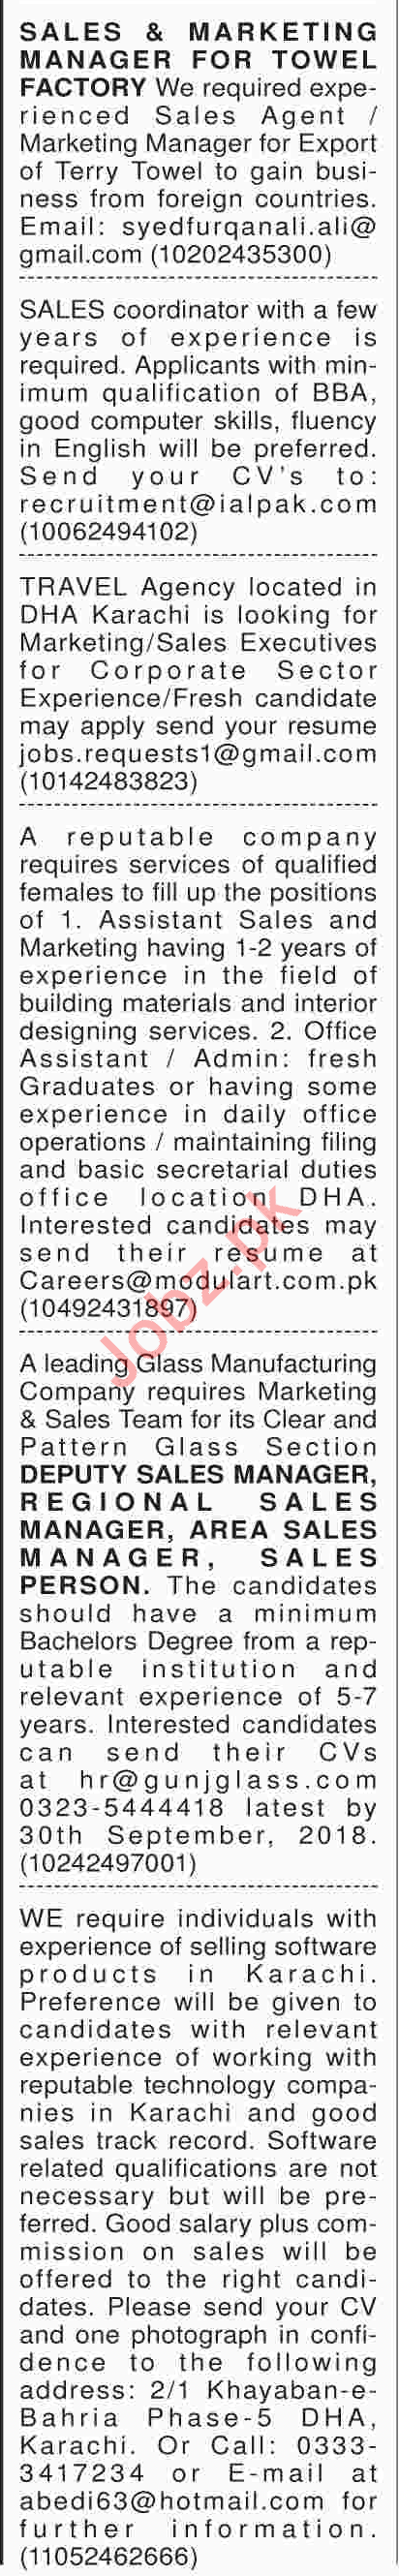 Marketing Executive, Manager, Assistant Manager Jobs